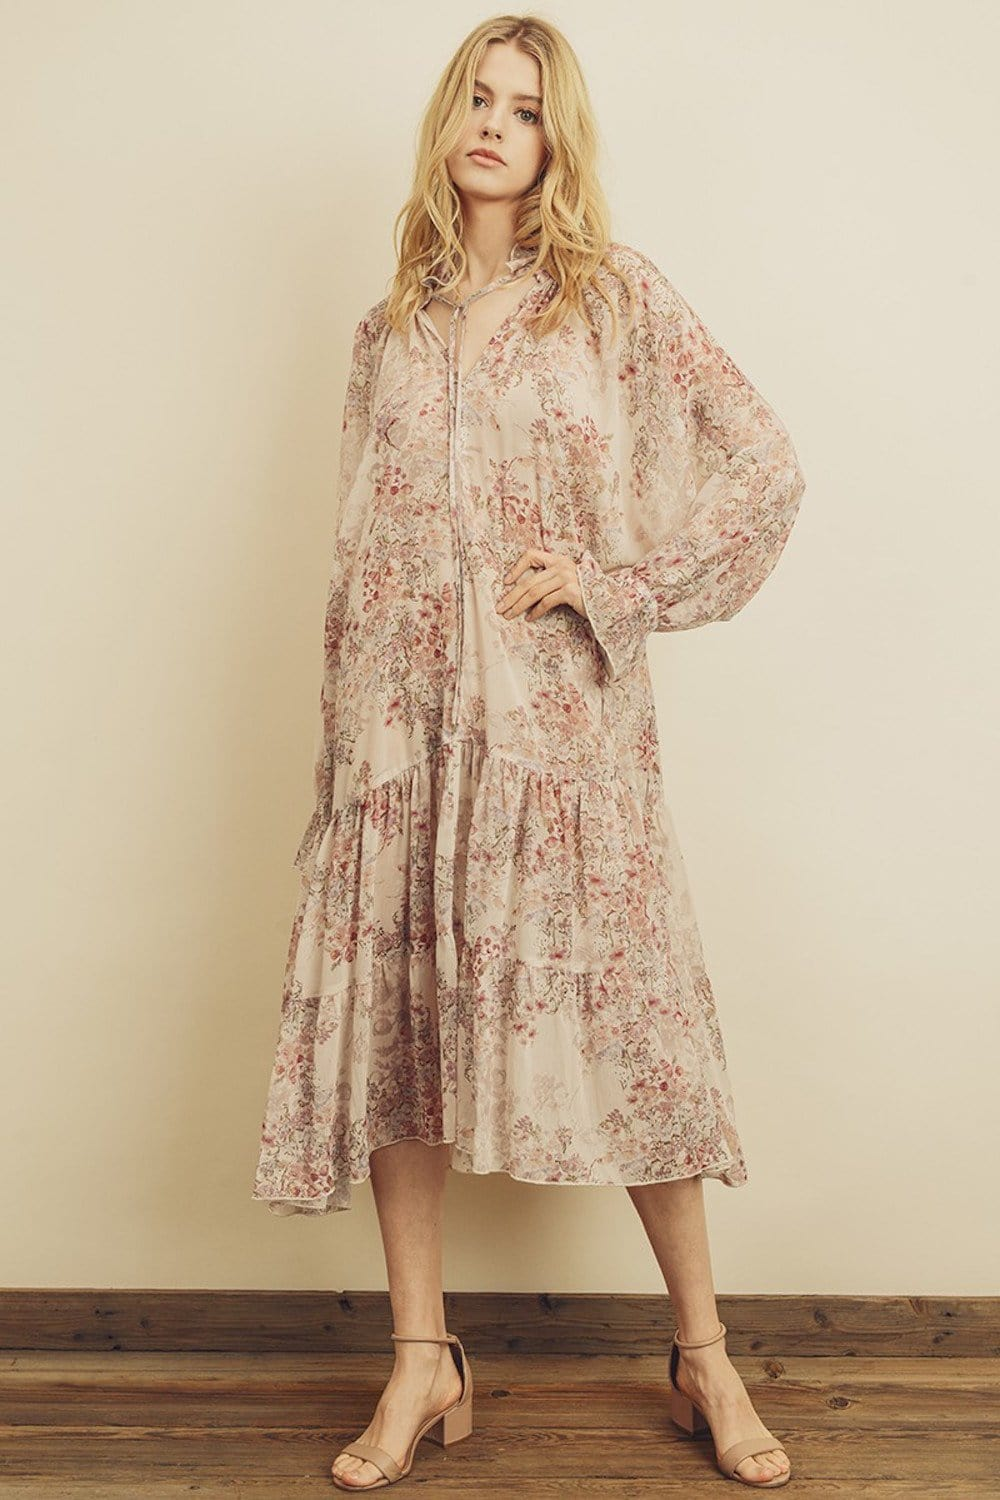 For Love And Floral Dress